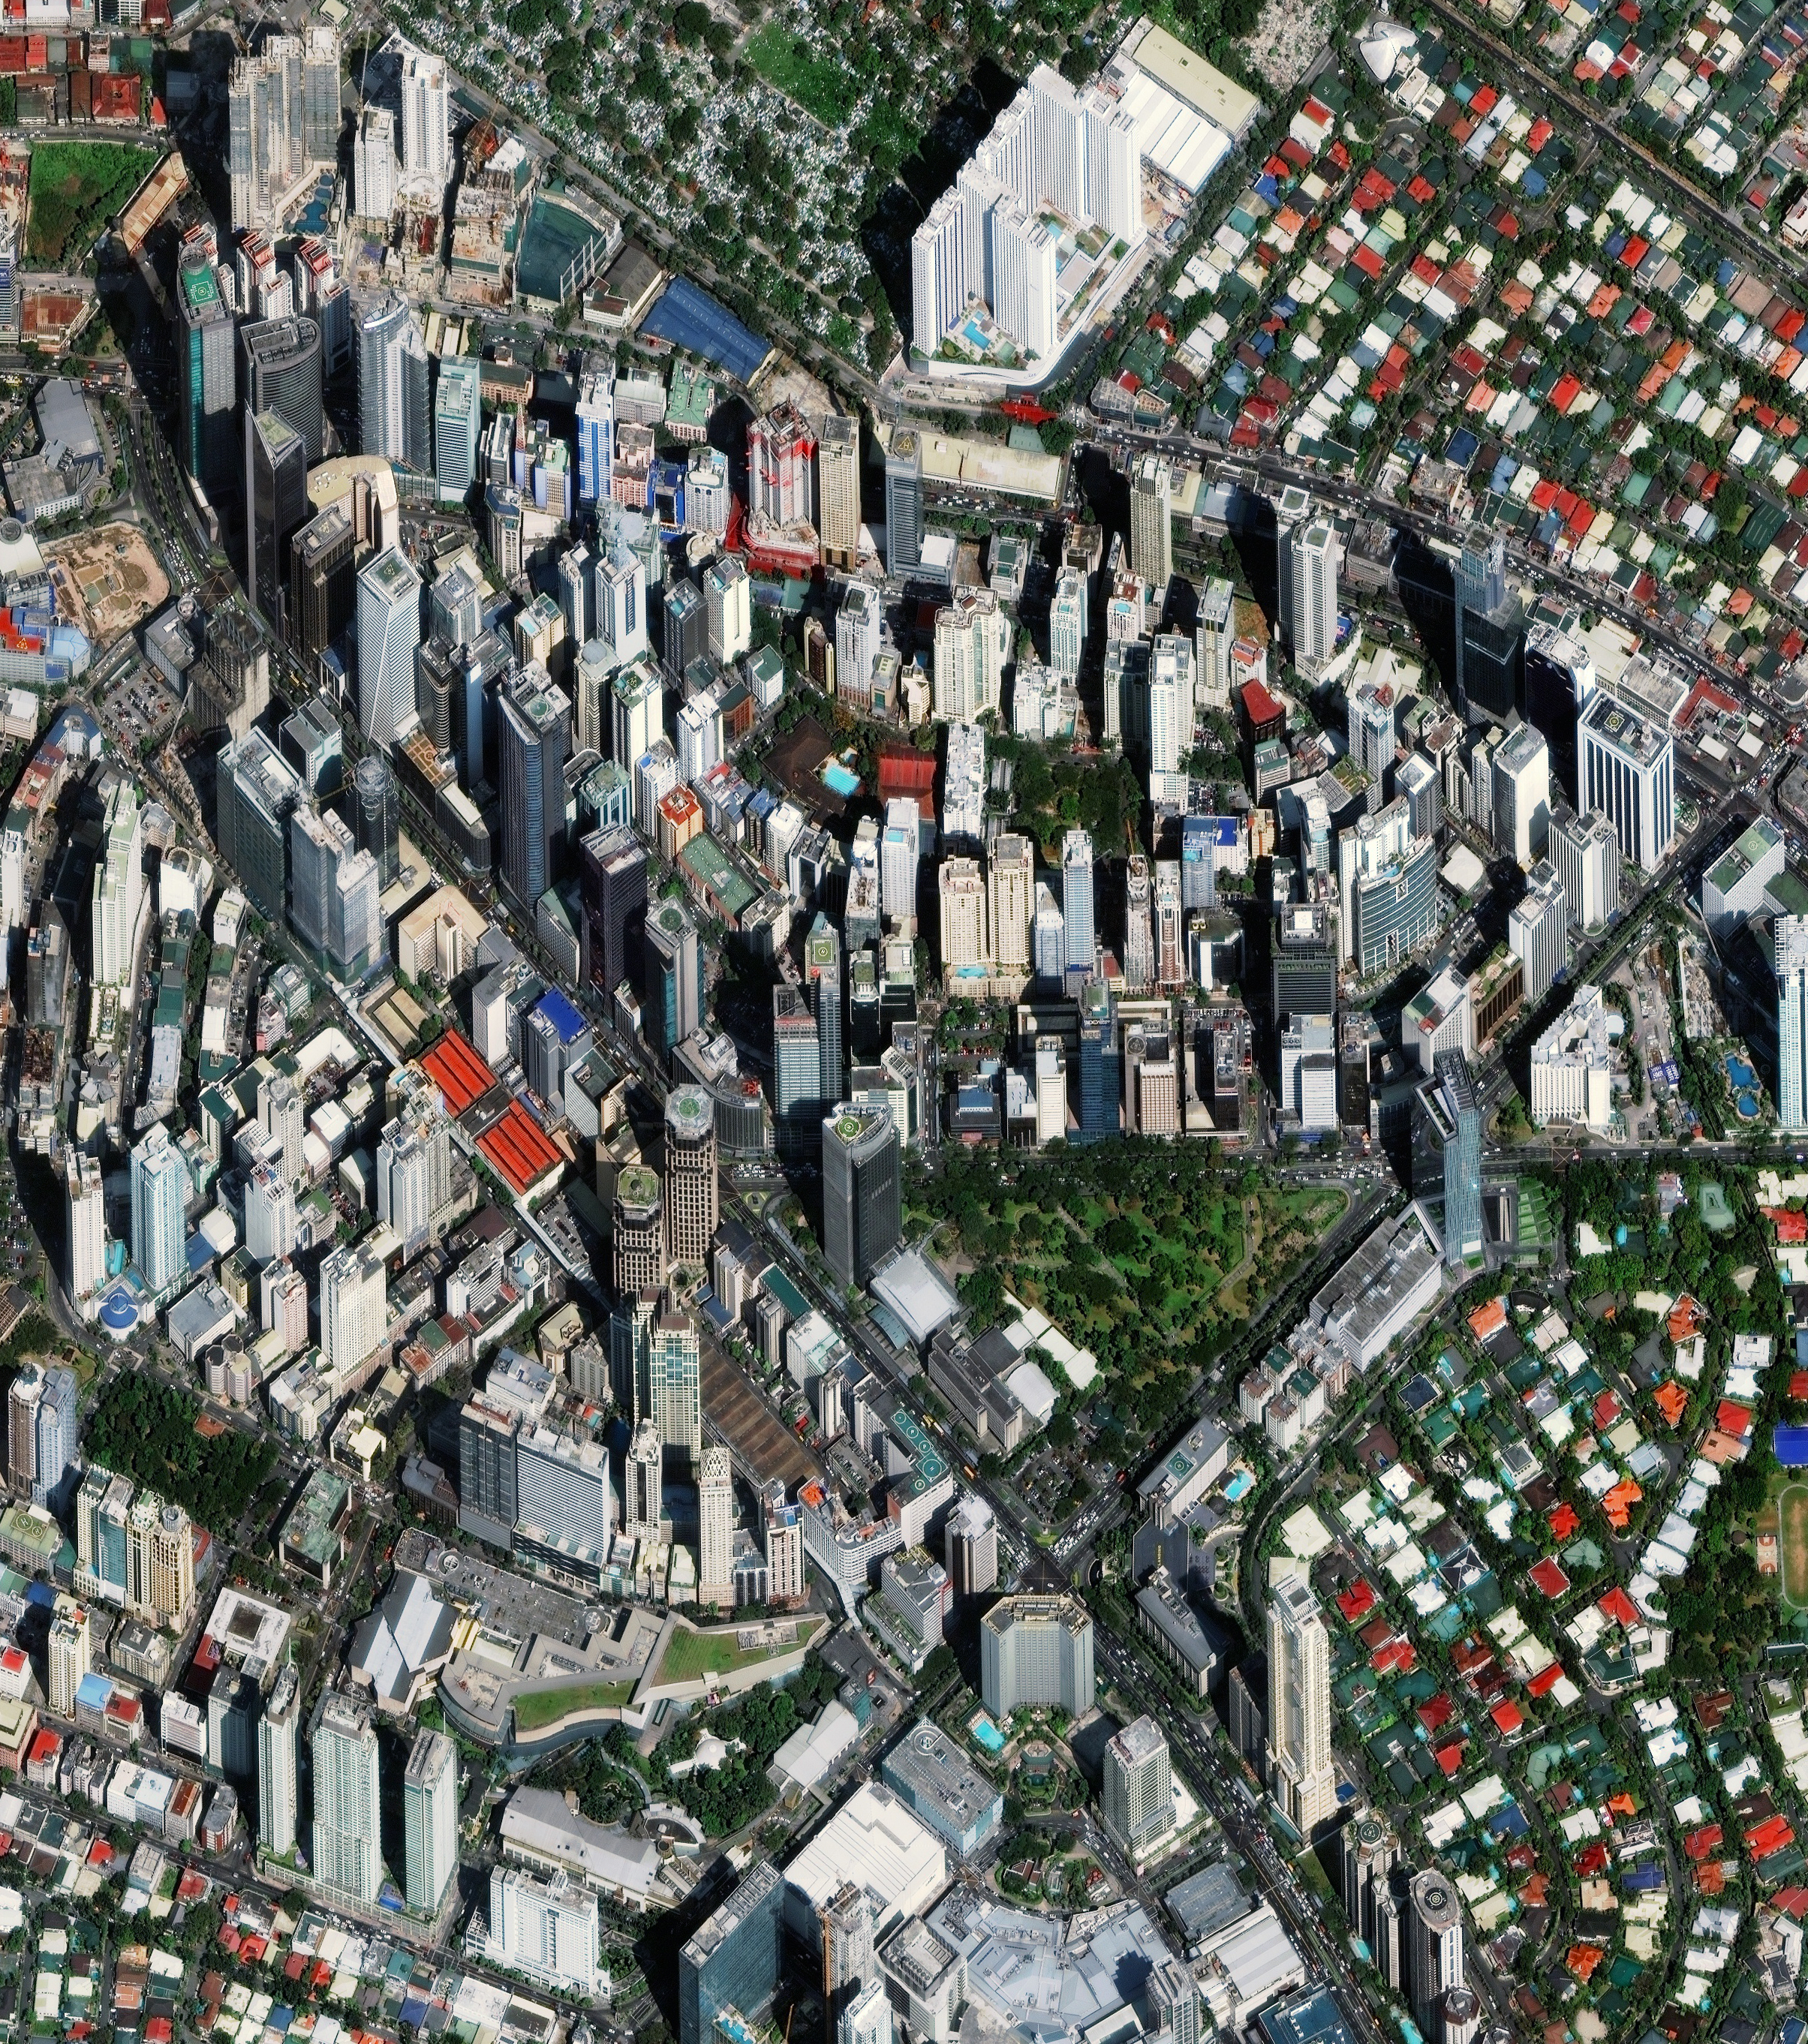 2/4/2016   Makati City   Metro Manila, Philippines  14°33′N 121°02′E    Makati City is one of sixteen cities that constitutes Manila, the capital of the Philippines. As seen in this Overview, the architecture of the city has a fascinating blend of Spanish colonial architecture and modern skyscrapers.